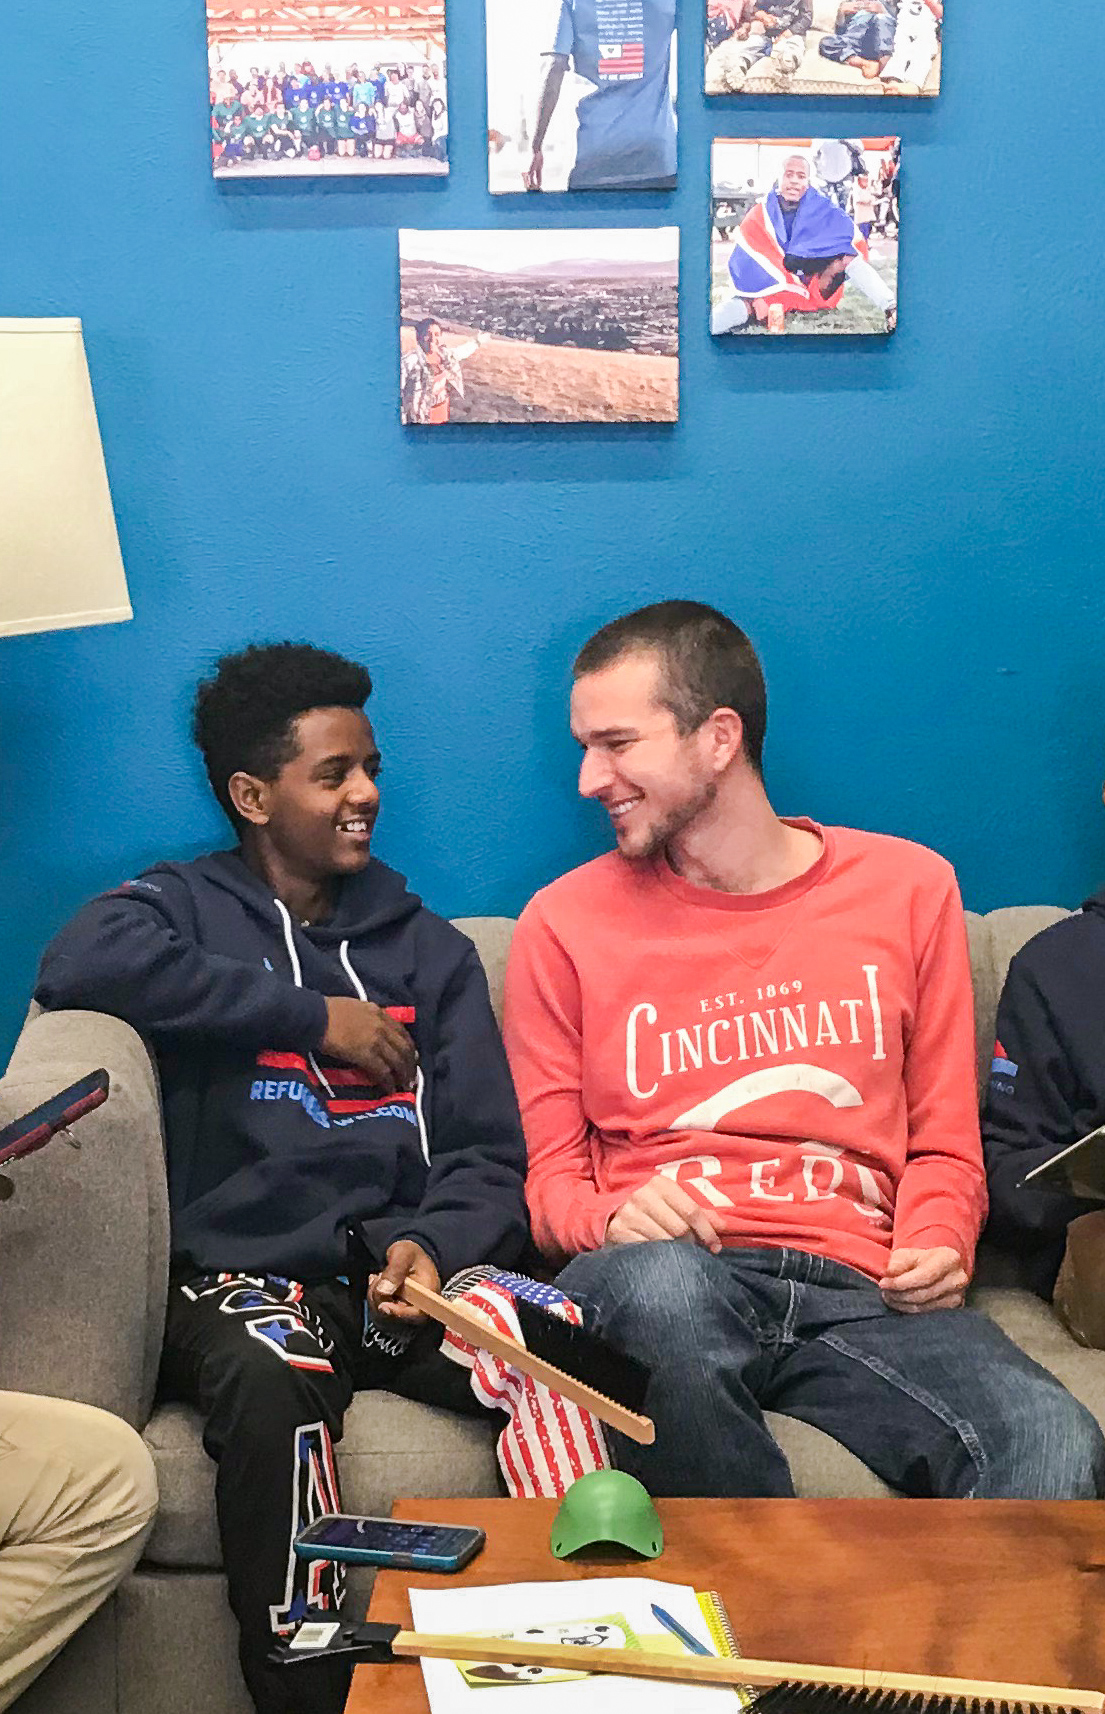 Chase hanging out with a refugee teen during after school tutoring